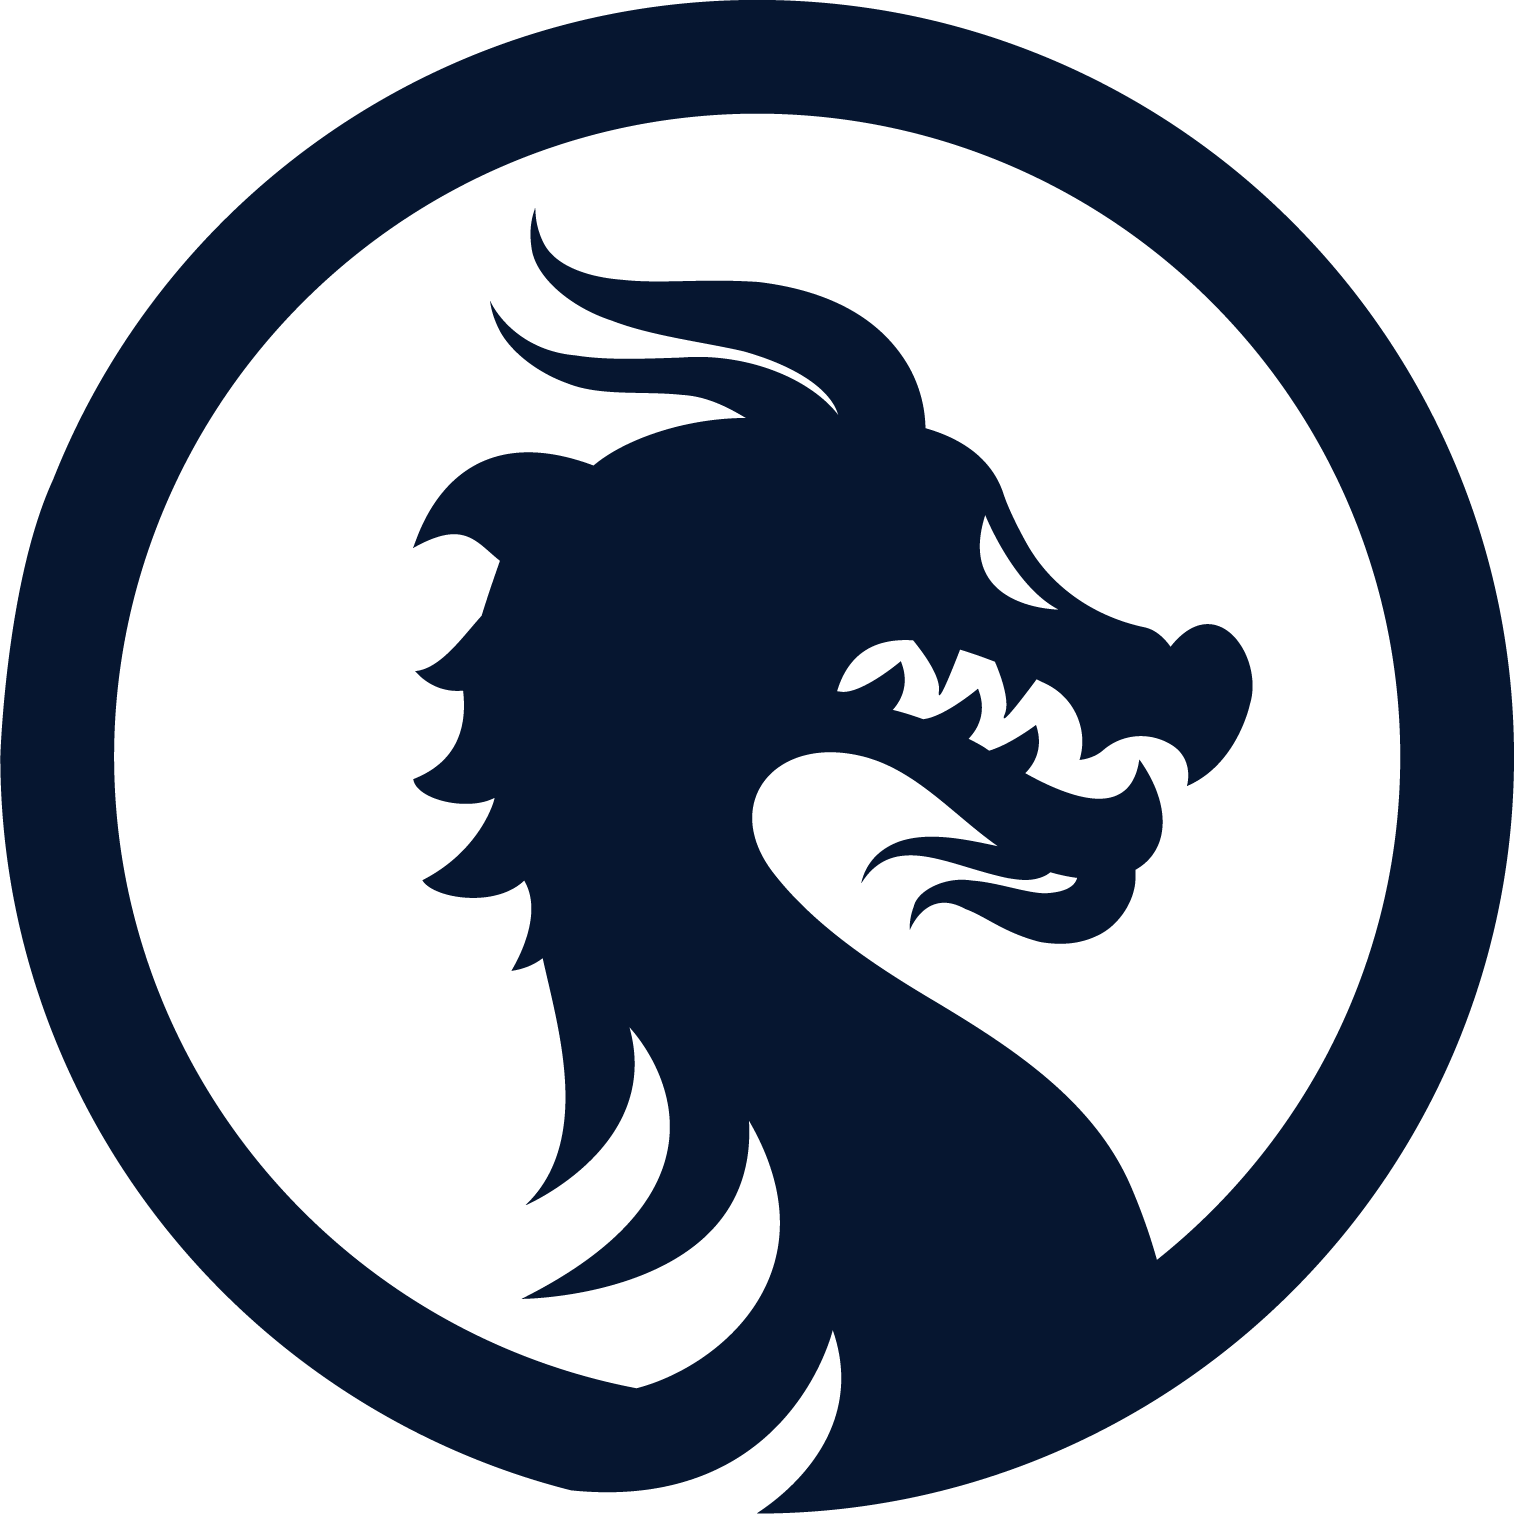 Dragon Logo Png - Dragon Logo Png (1514x1514)